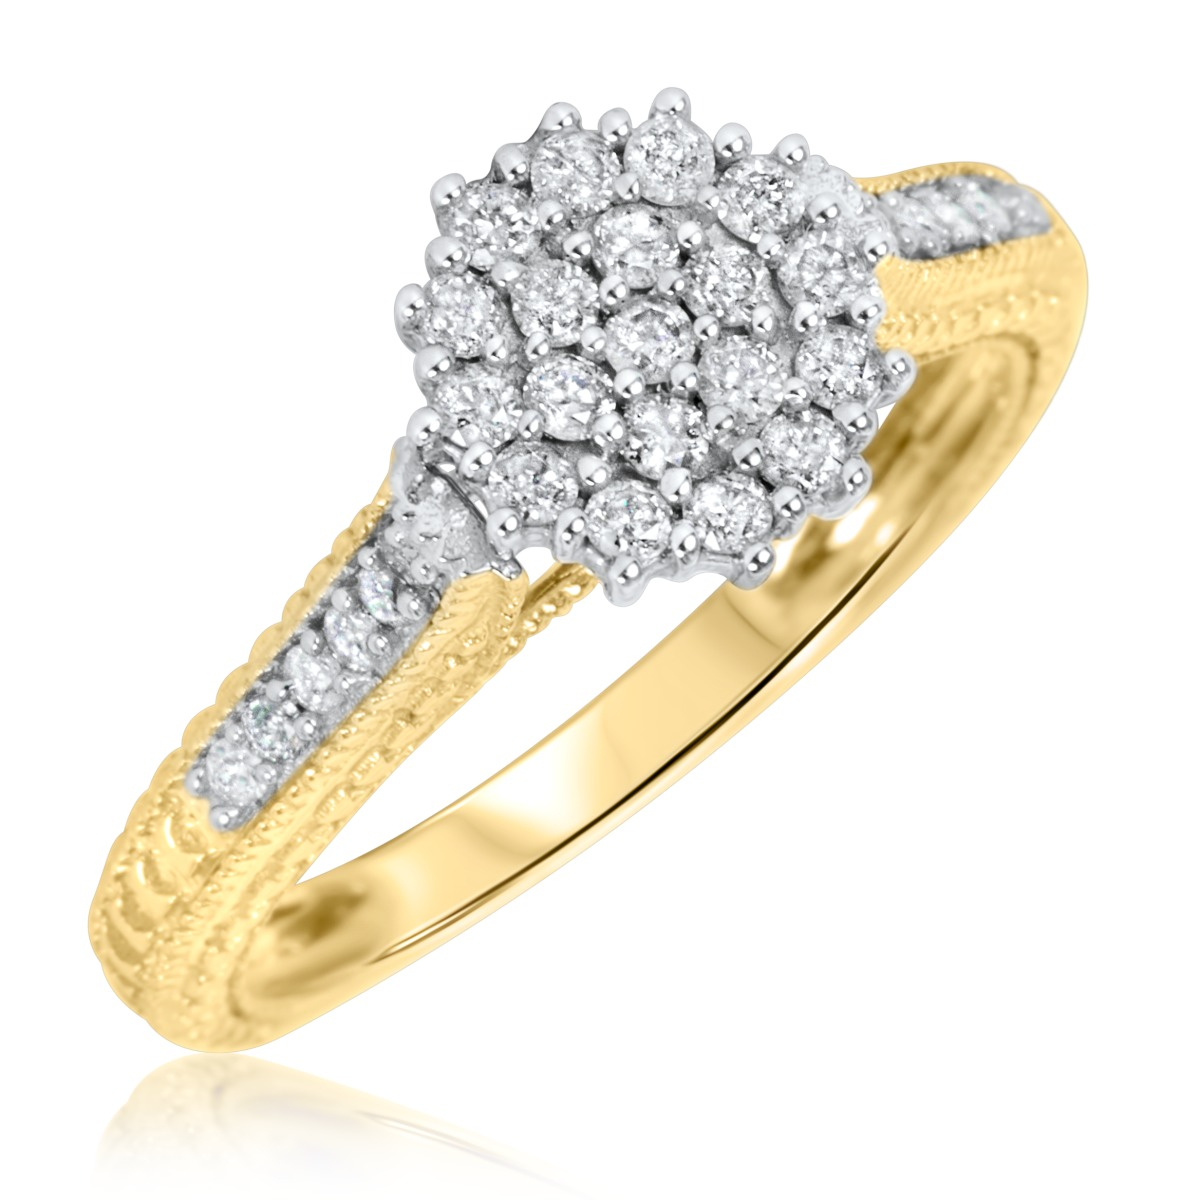 5/8 CT. T.W. Diamond Ladies' Engagement Ring 14K Yellow Gold